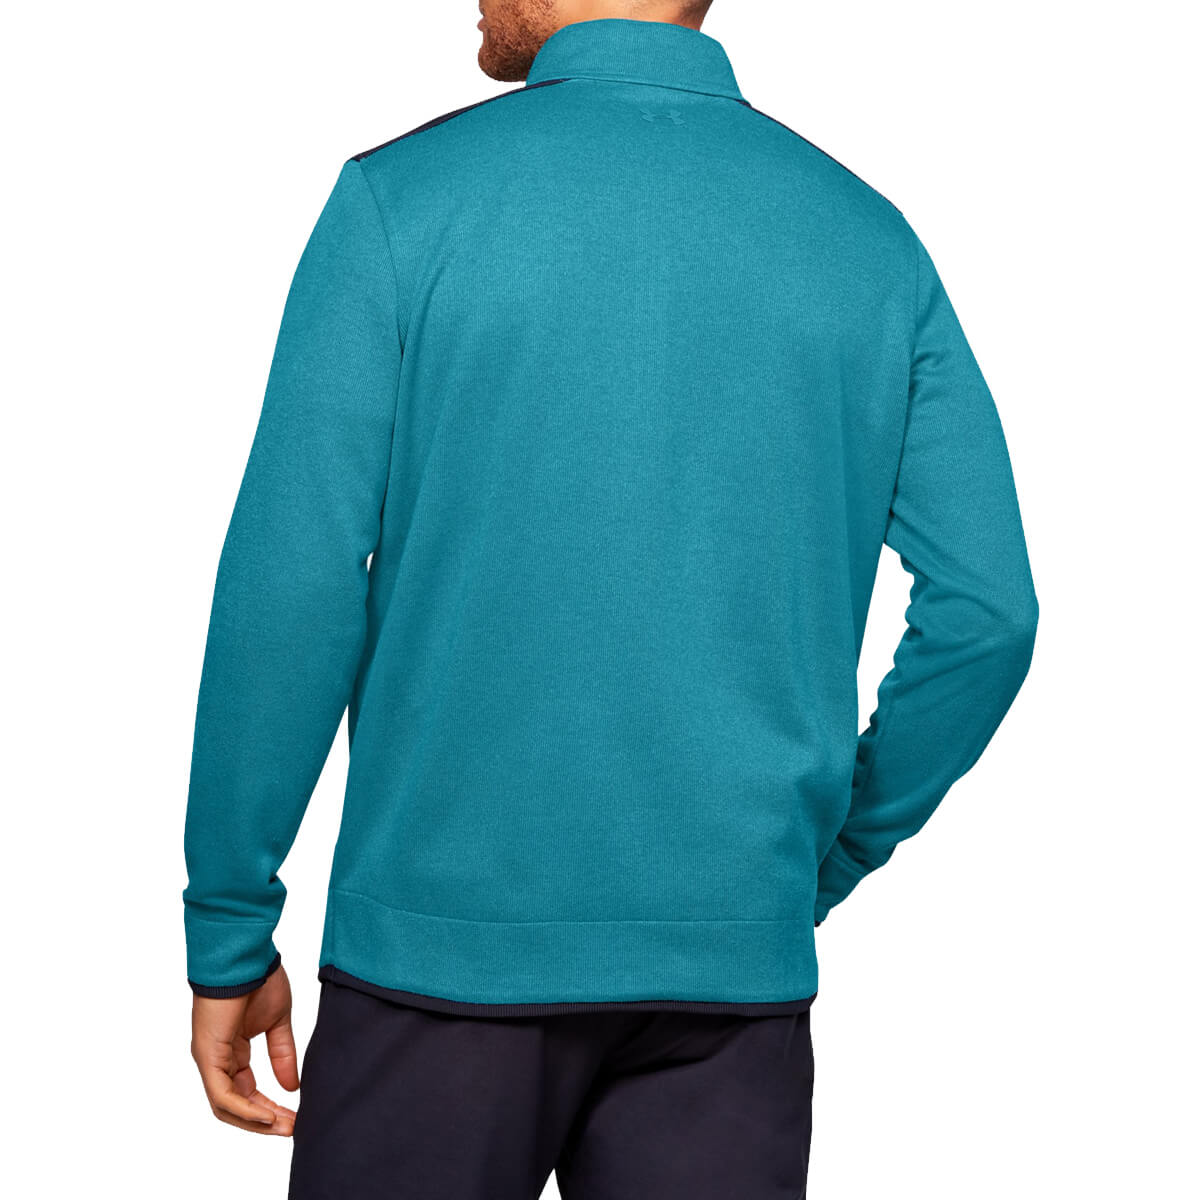 Under-Armour-Homme-UA-sweaterfleece-1-2-zip-resistant-a-l-039-eau-Pullover-40-OFF-RRP miniature 22